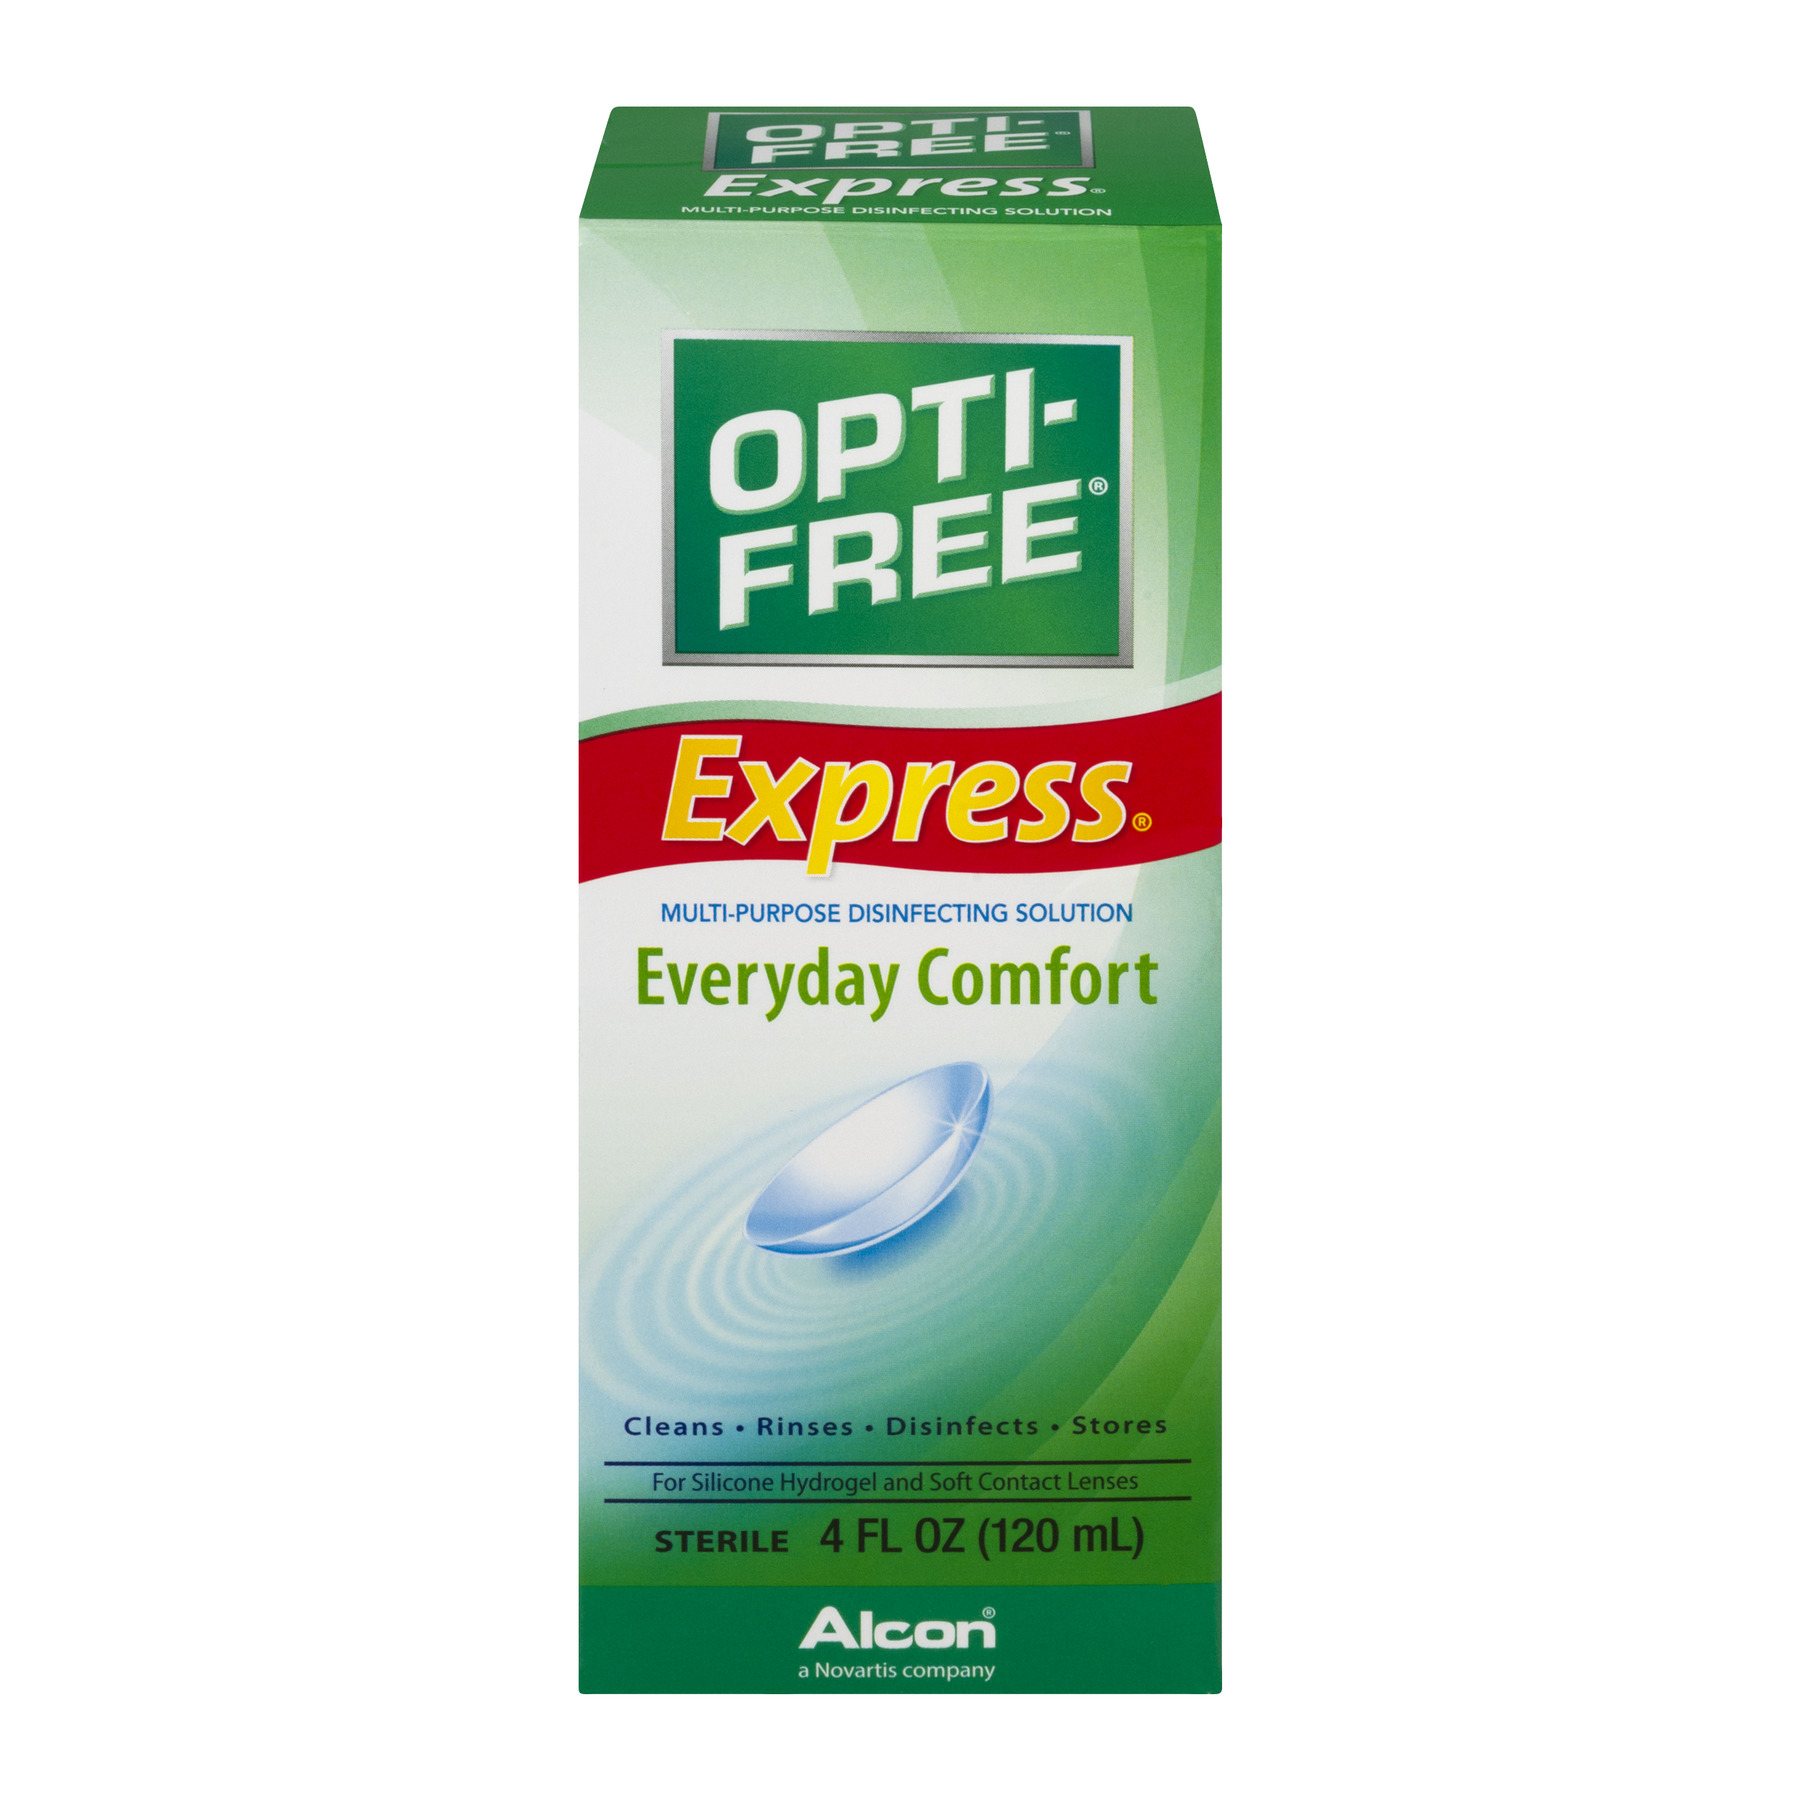 OPTI-FREE EXPRESS Everyday Comfort, 4 oz []